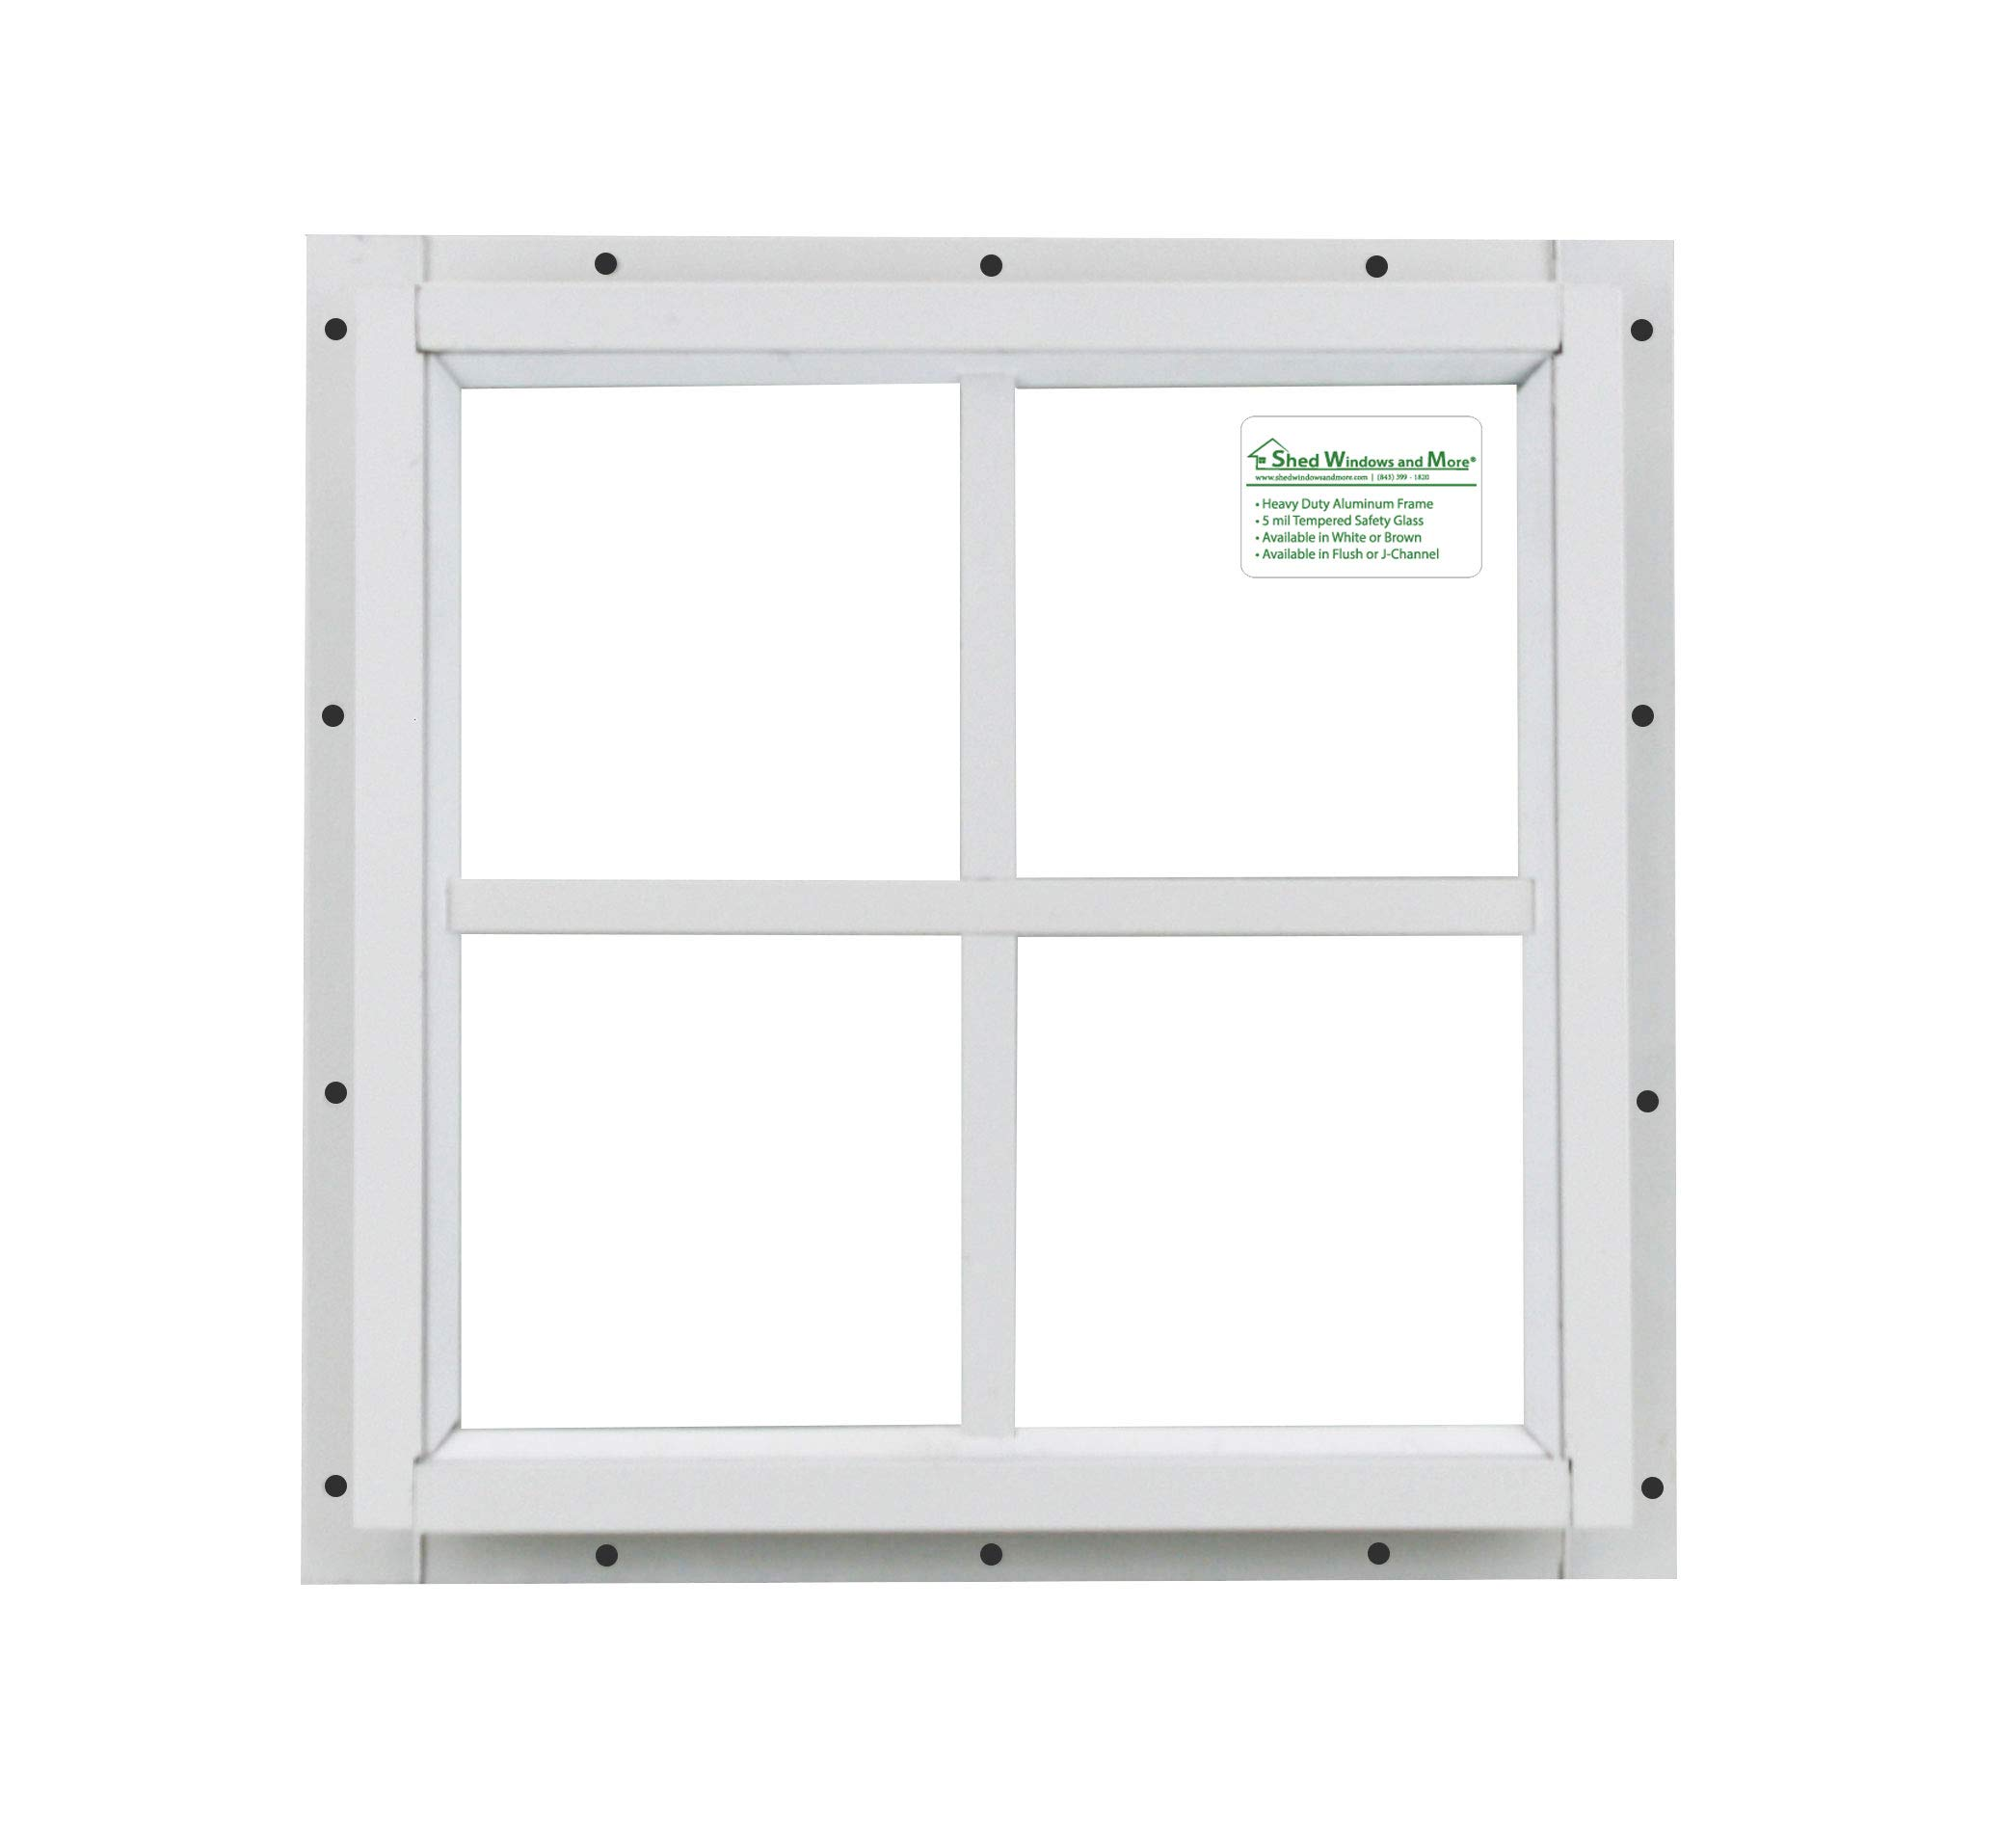 Shed Small Square Window 12'' x 12'' White J-Channel w/Safety Glass